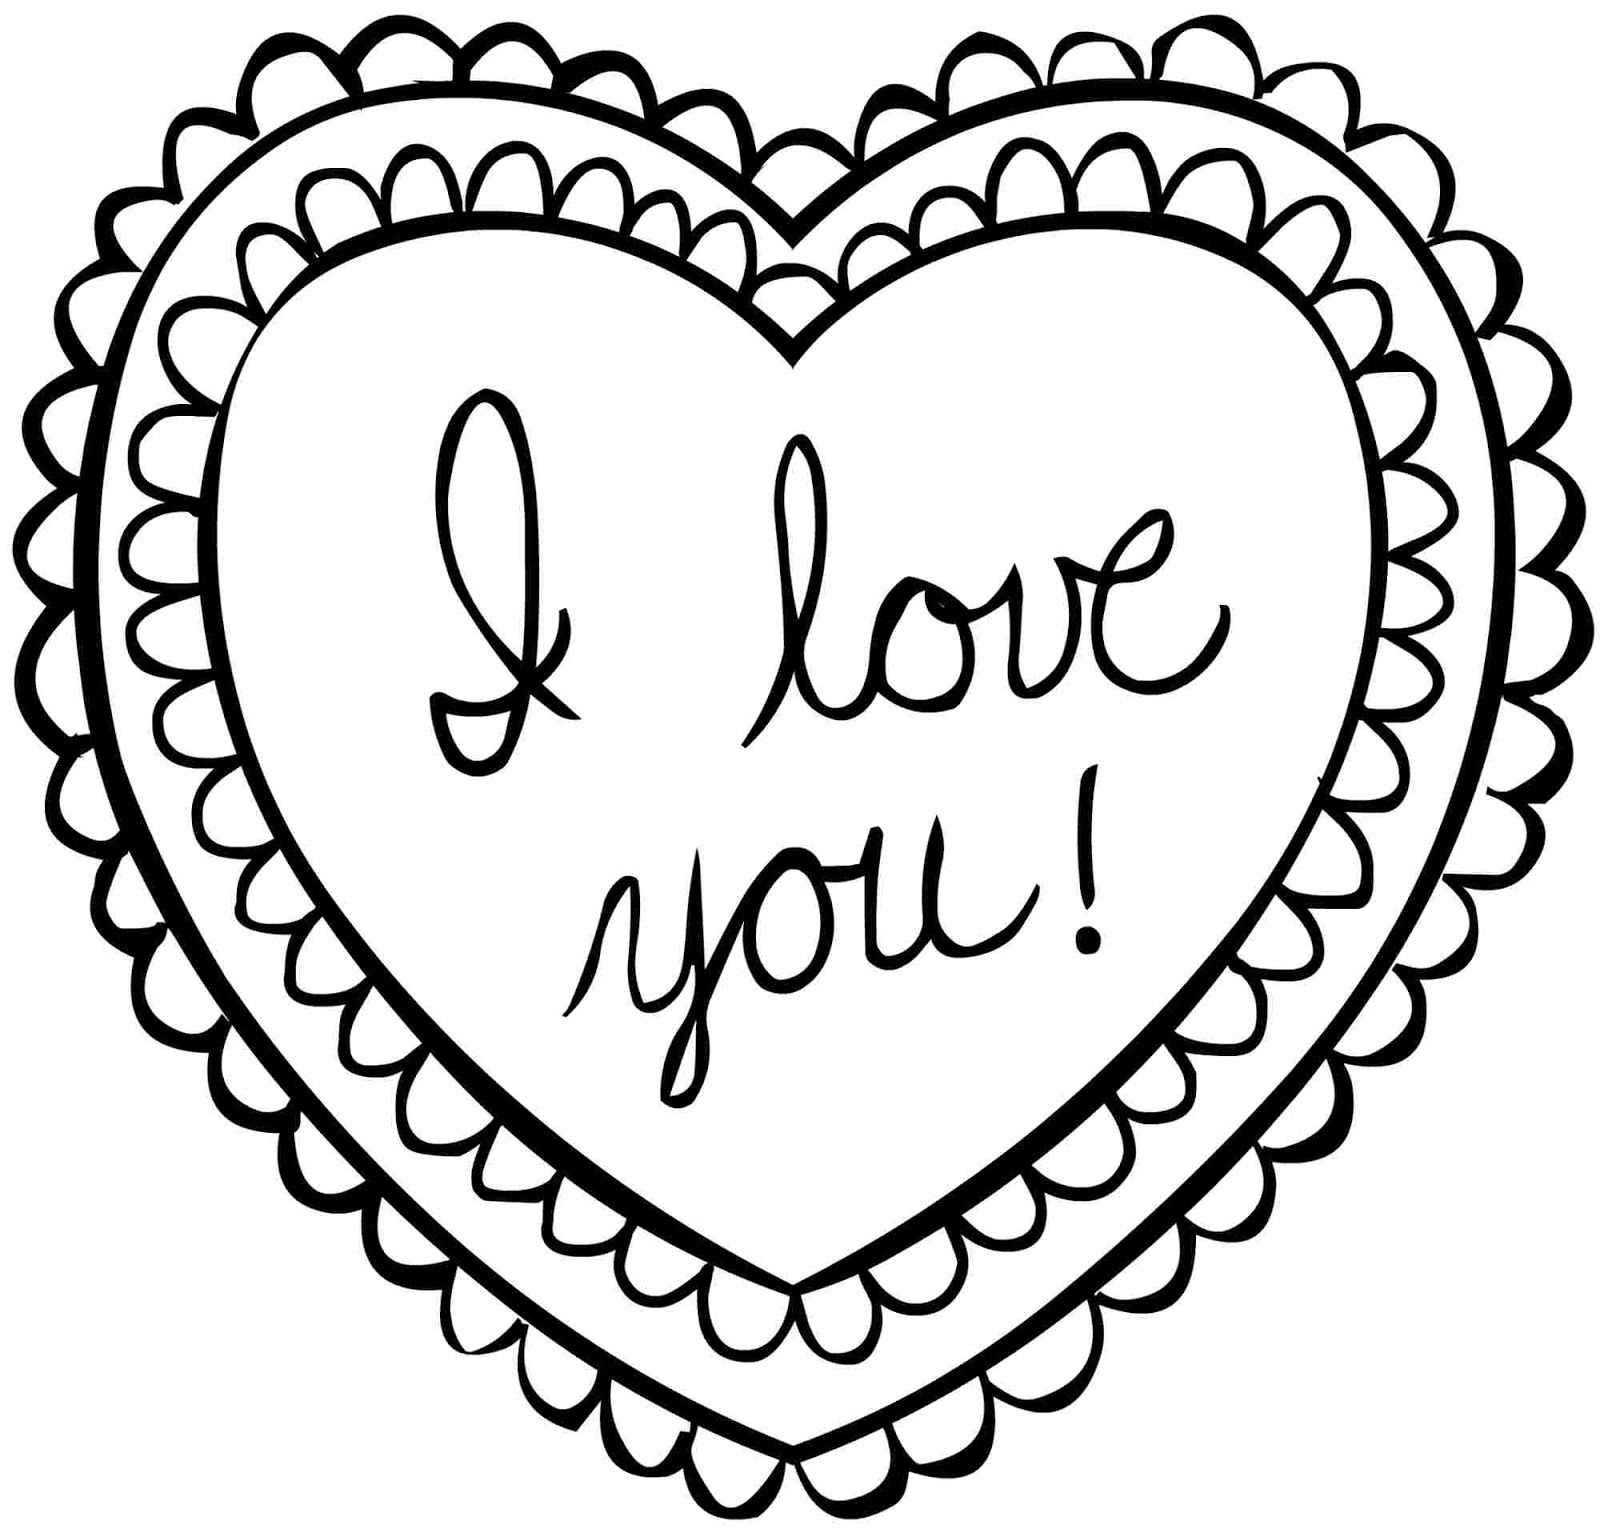 valentine coloring pages heart shaped - Coloring Pages Of A Heart